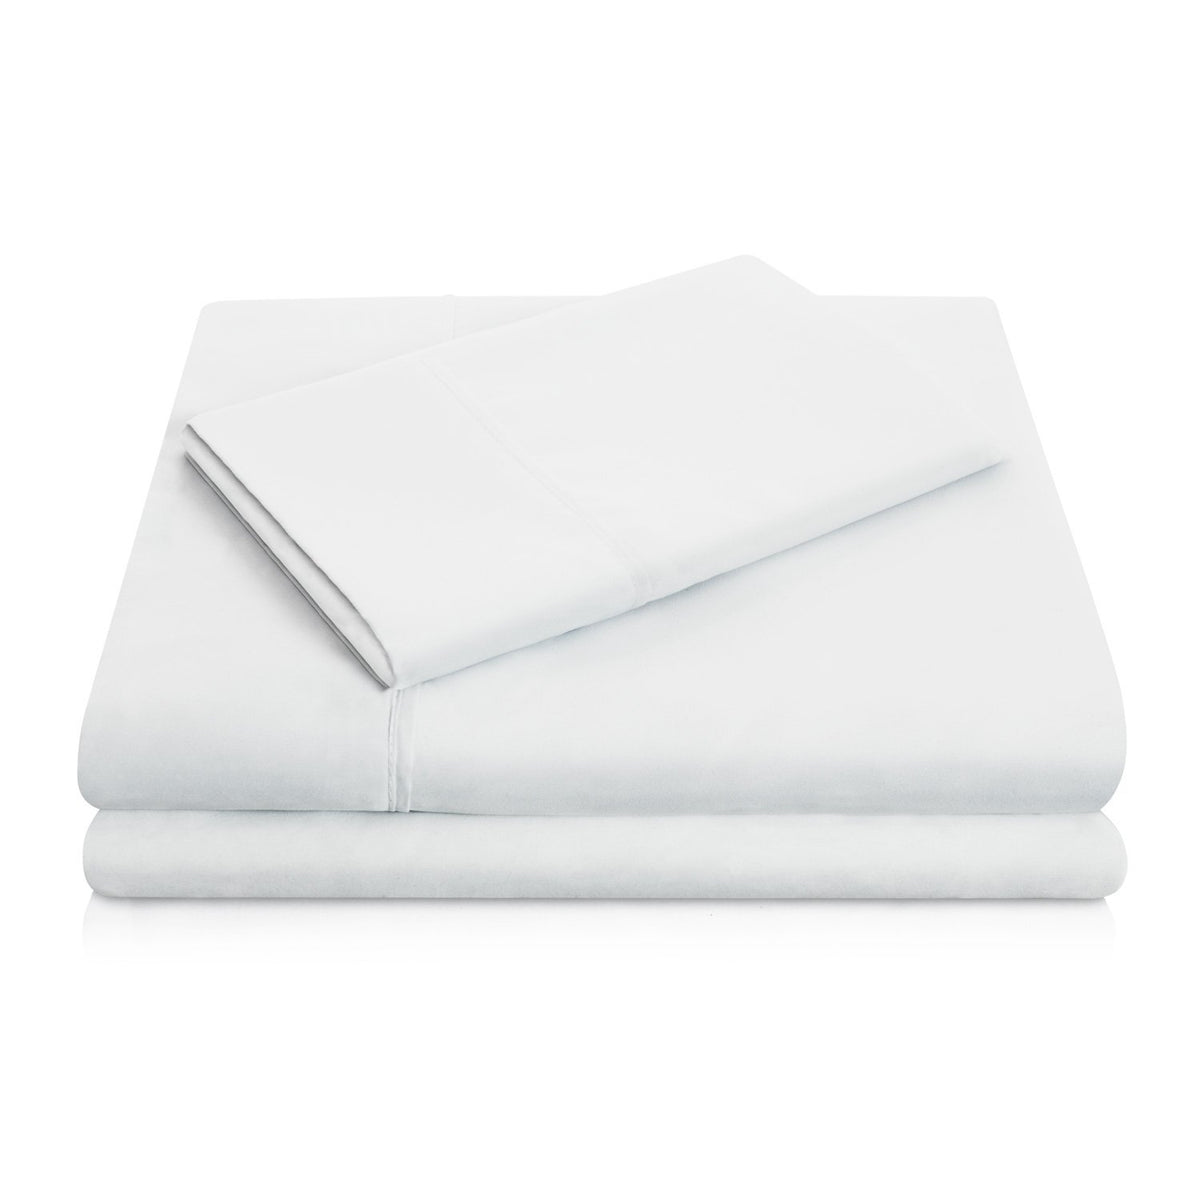 WOVEN Brushed Microfiber Sheet Set Sheet Set Malouf Twin Ash